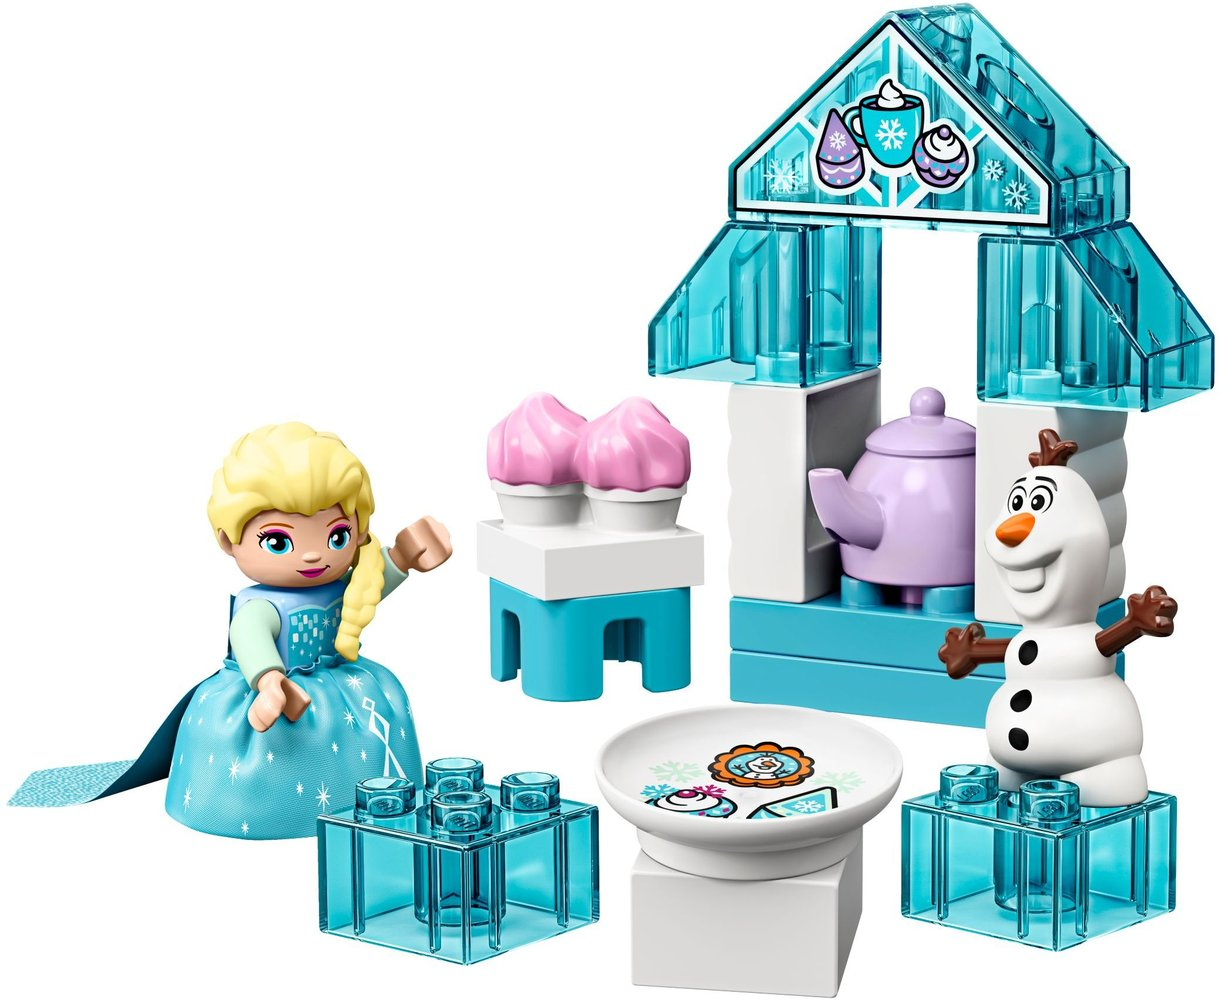 Elsa & Olaf's Tea Party